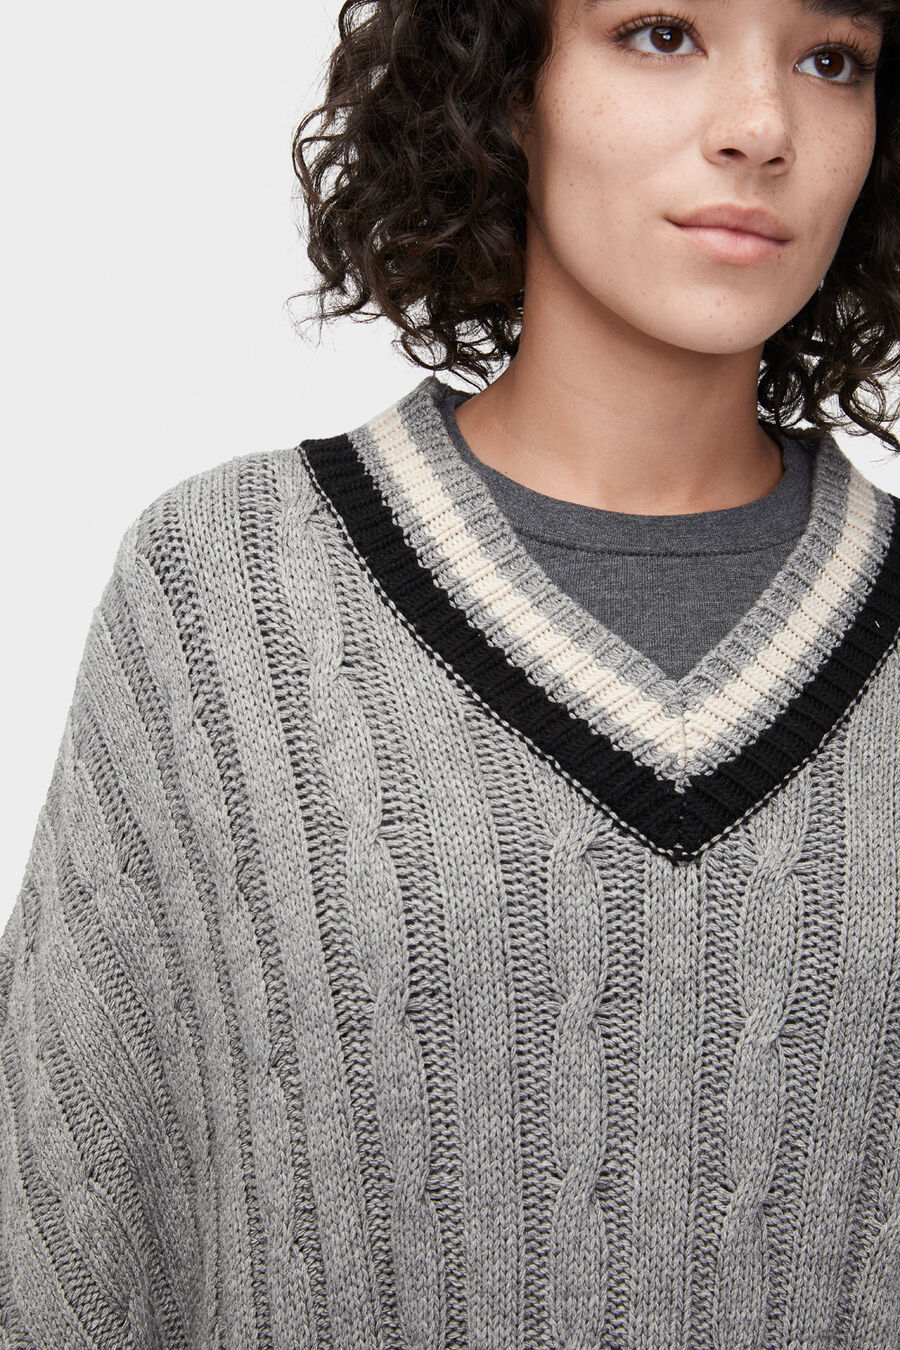 Weslynn Sweater Poncho - Image 4 of 5